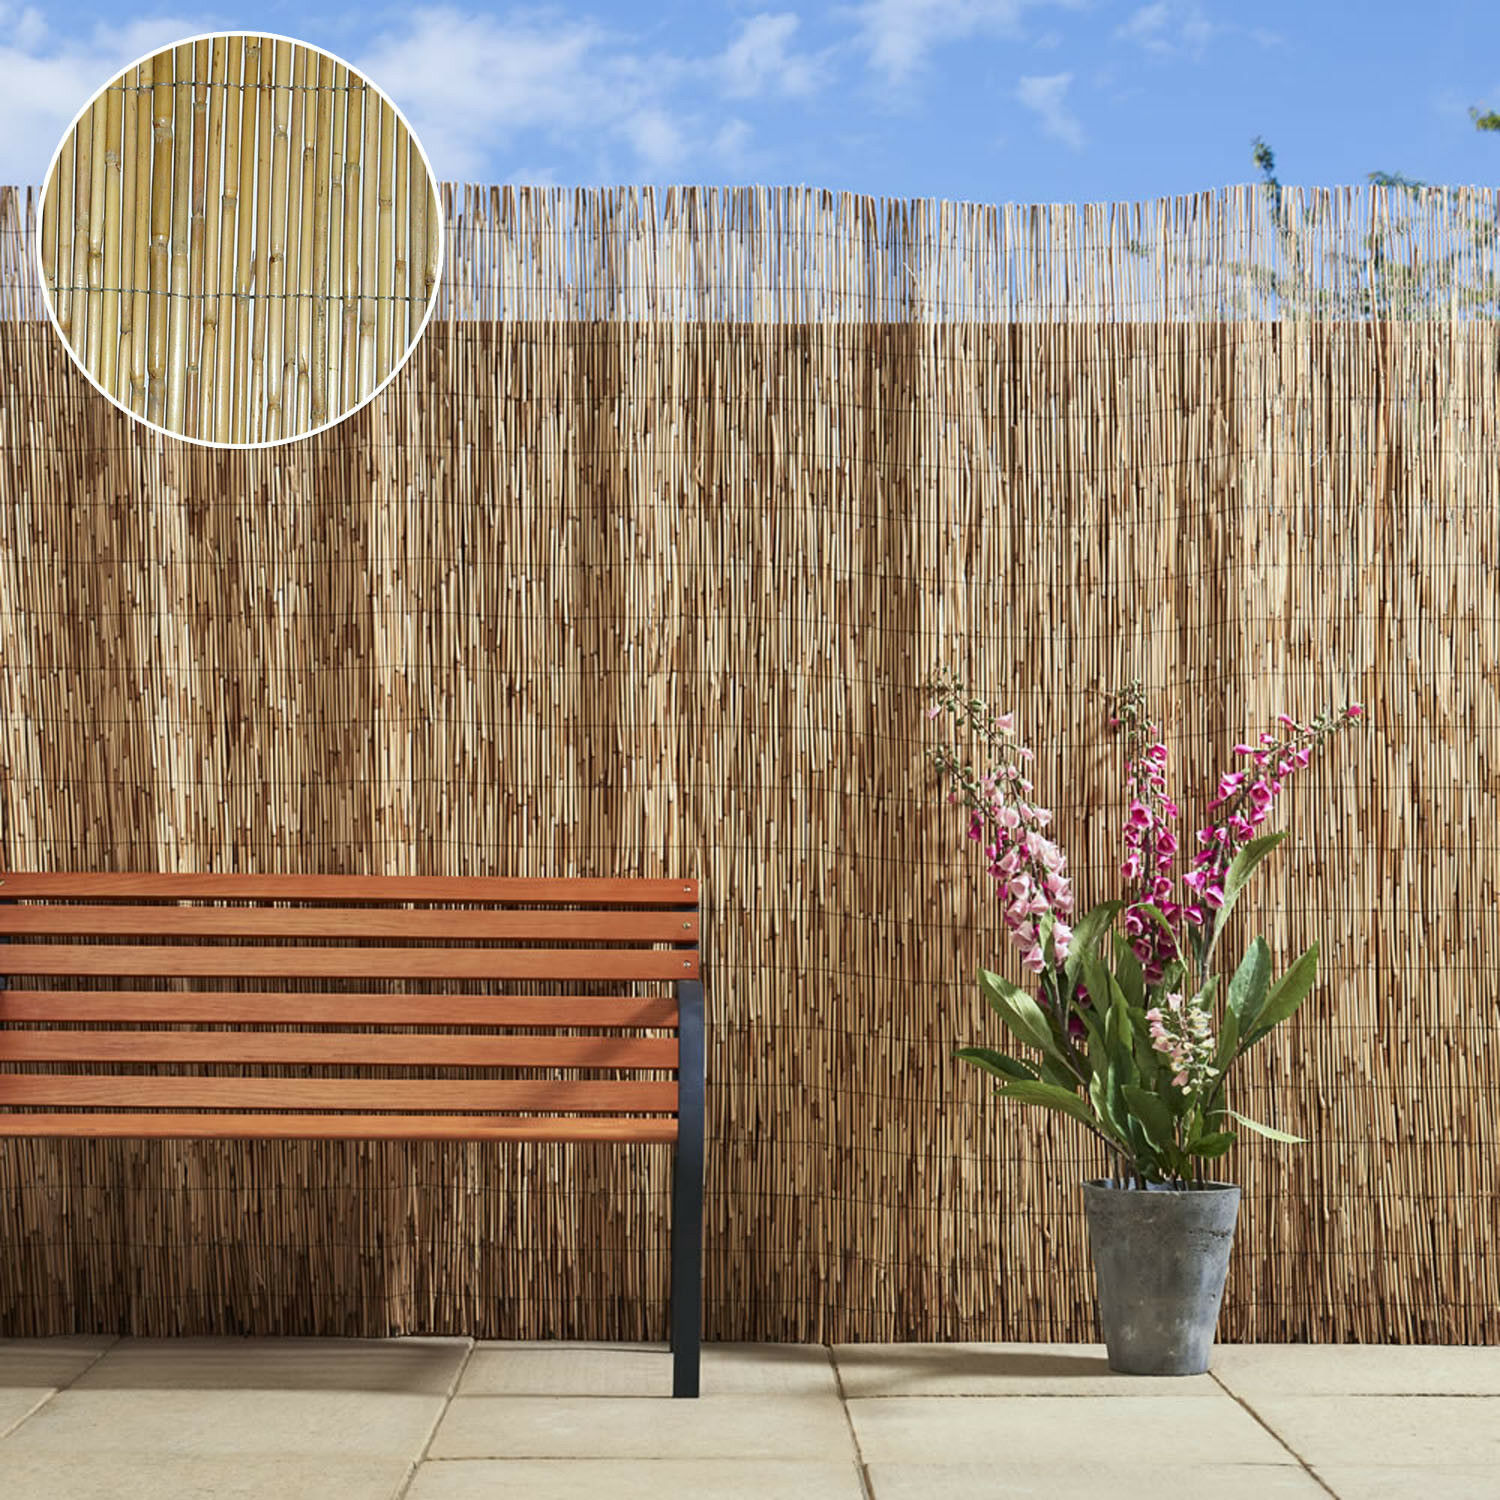 4m bamboo screening roll natural fence